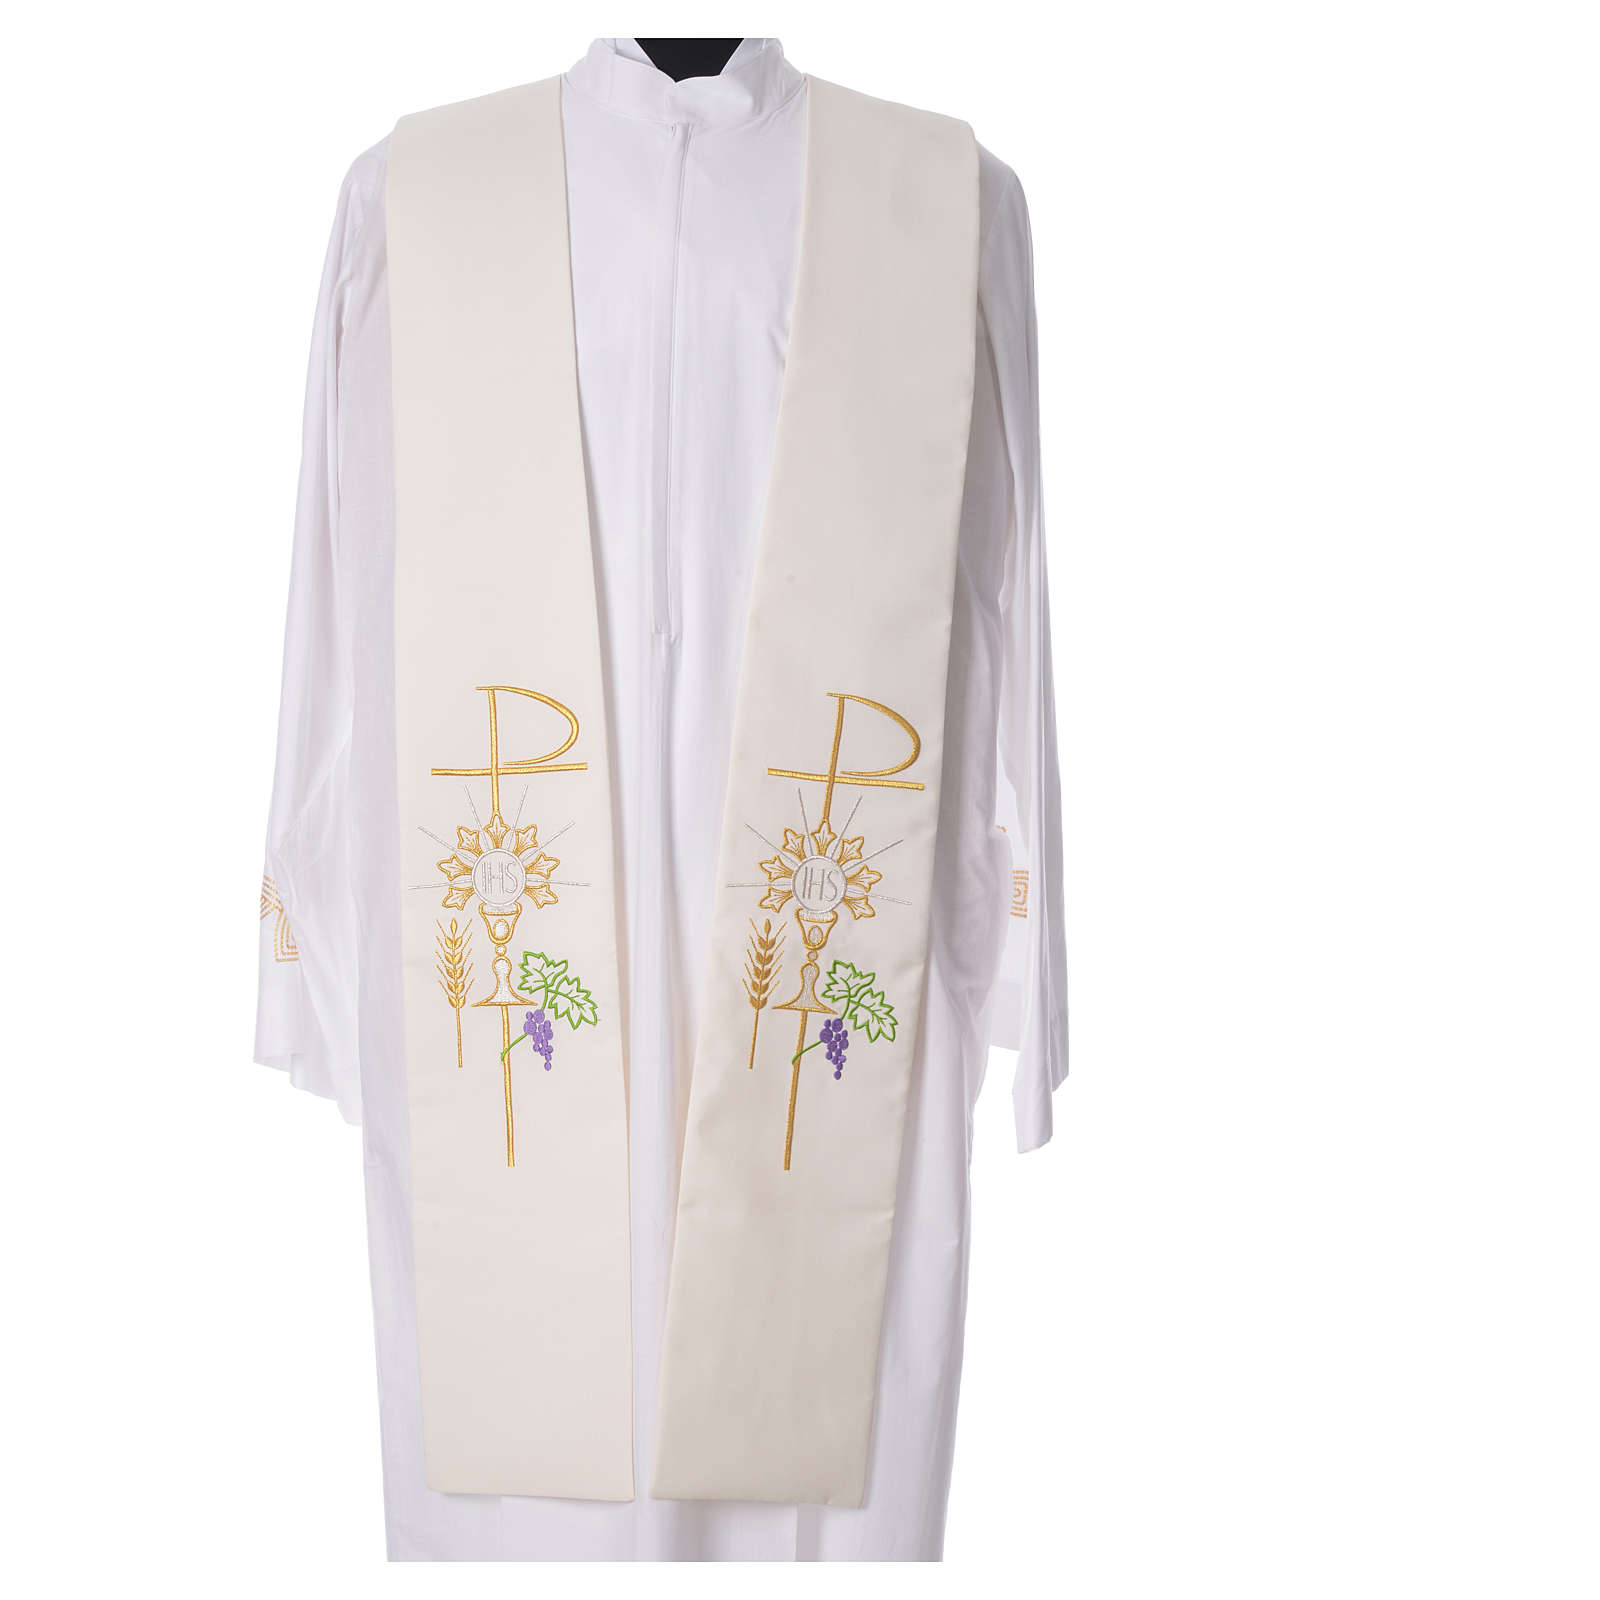 Tristole in polyester with chalice, host, grapes and Chi-rho sym 4